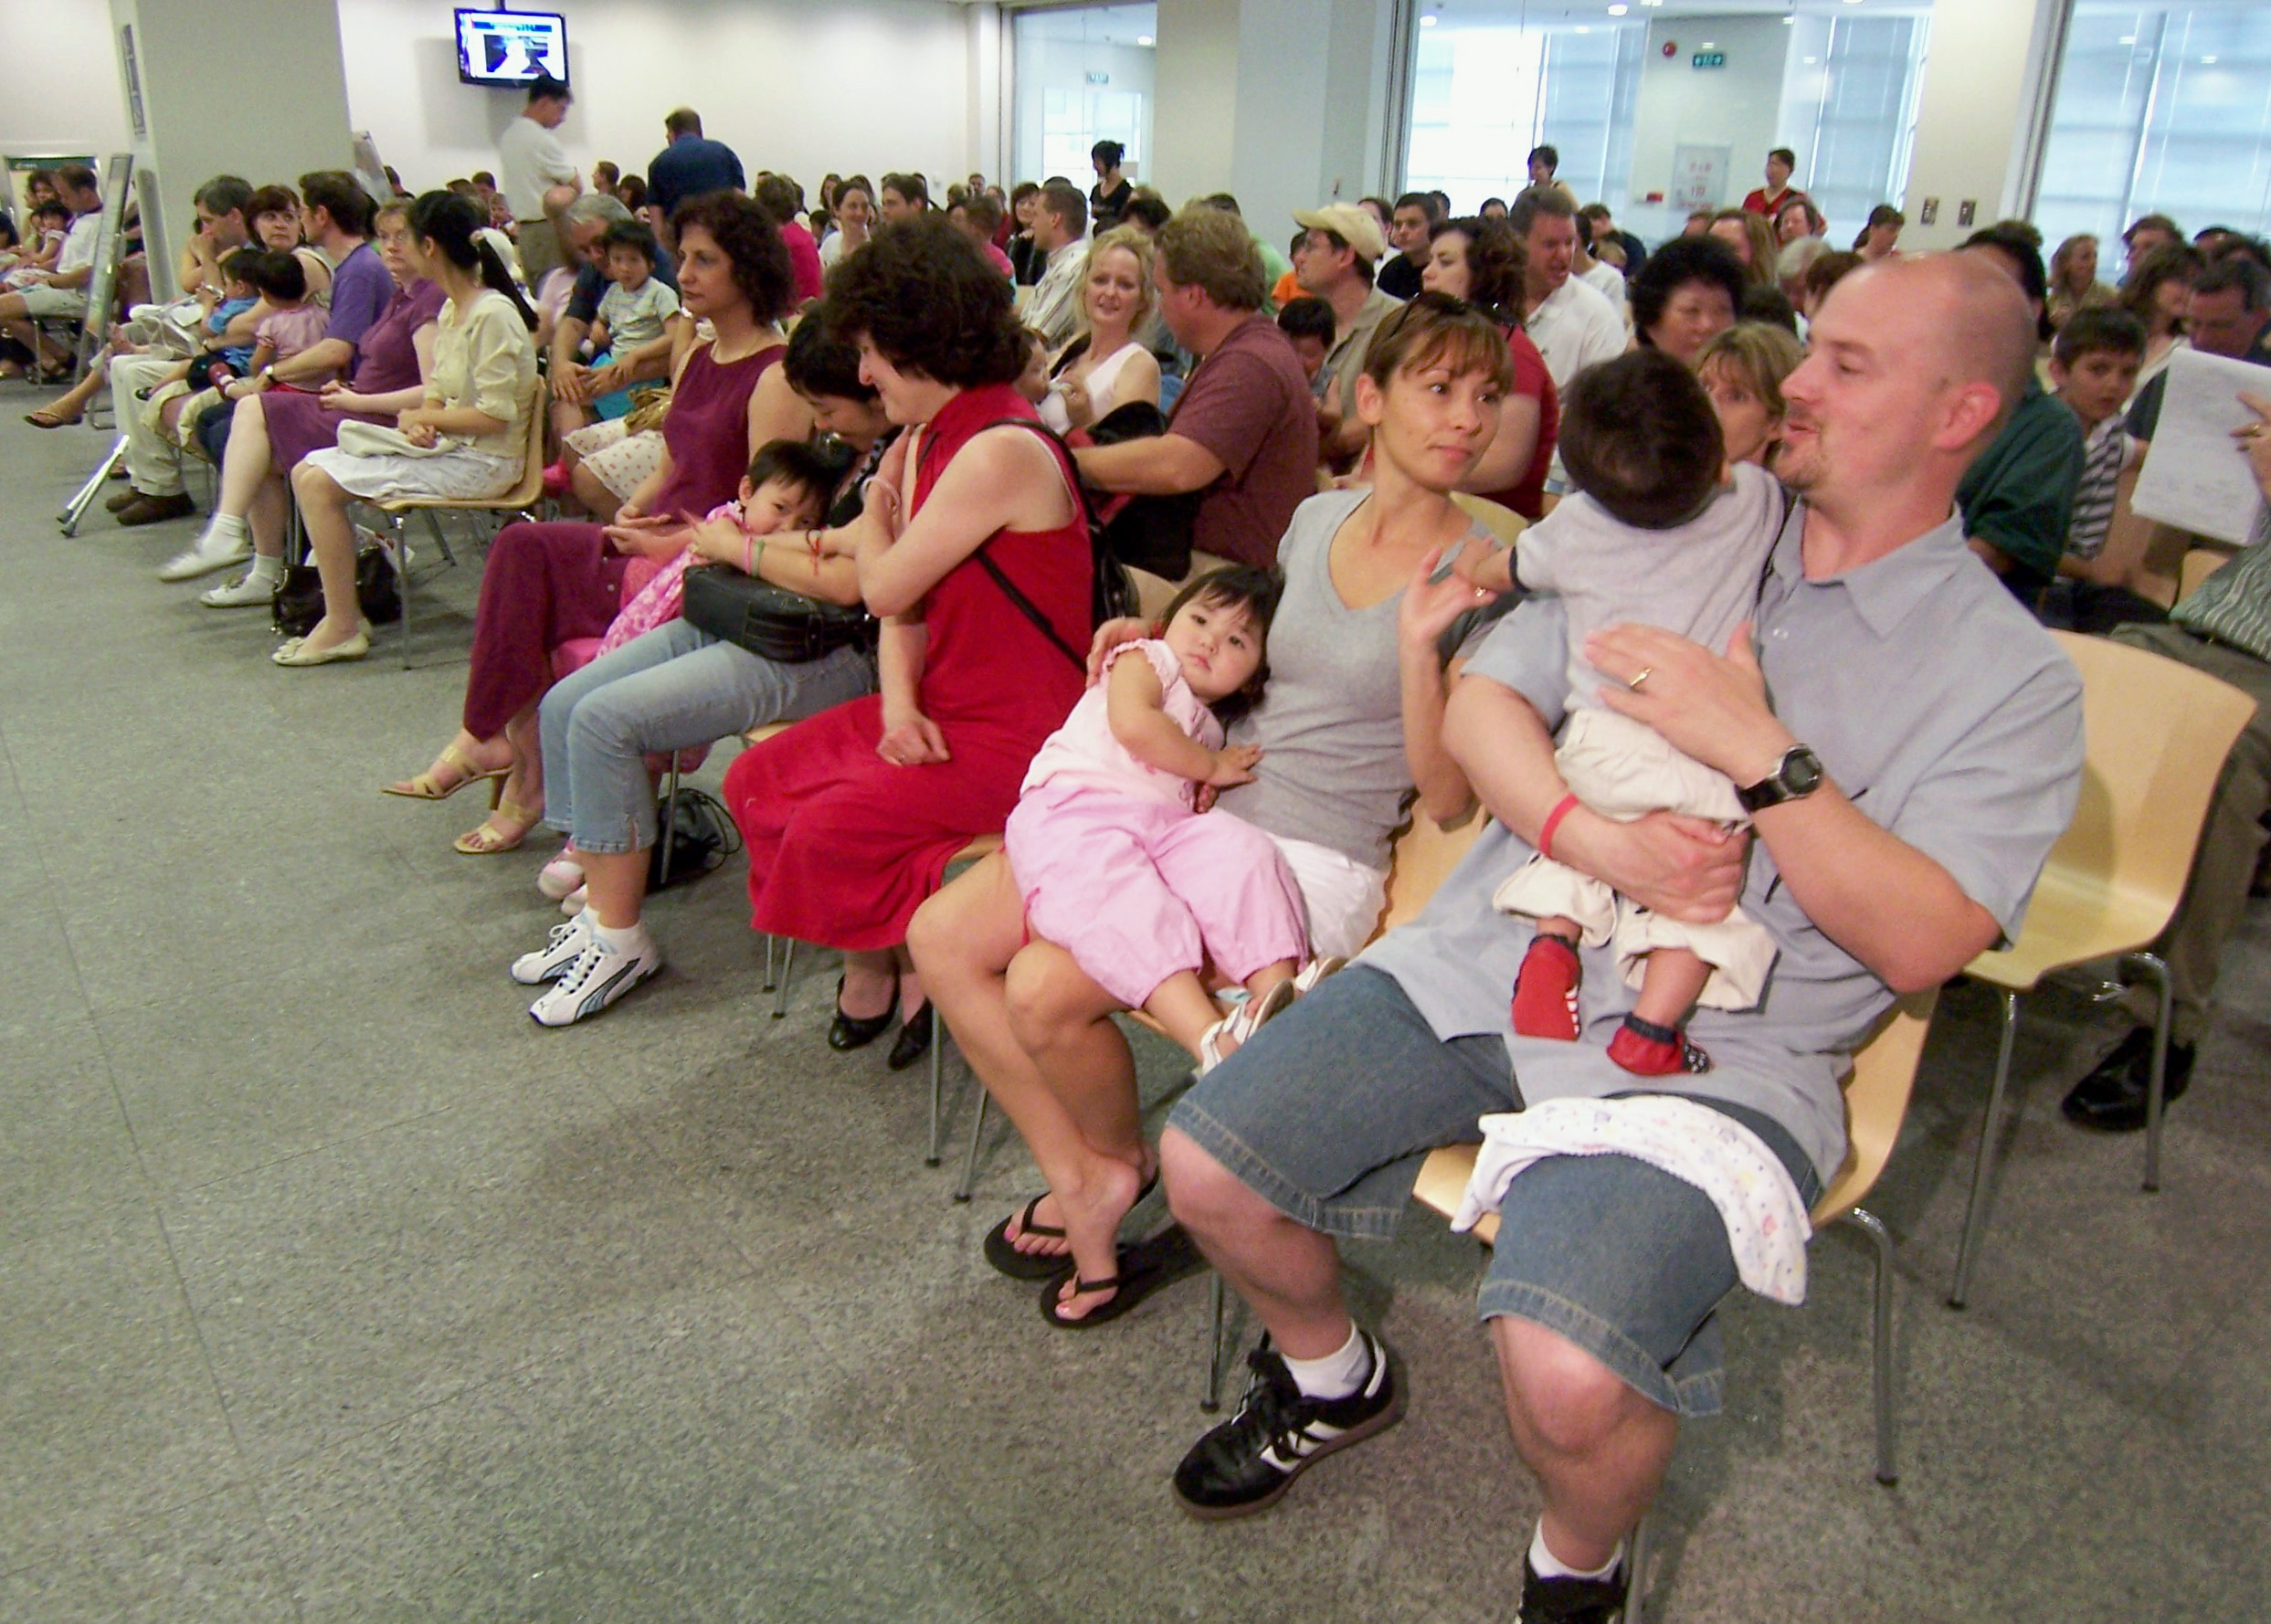 www.voanews.com: International Adoptions Resume Amid COVID, But Not in China